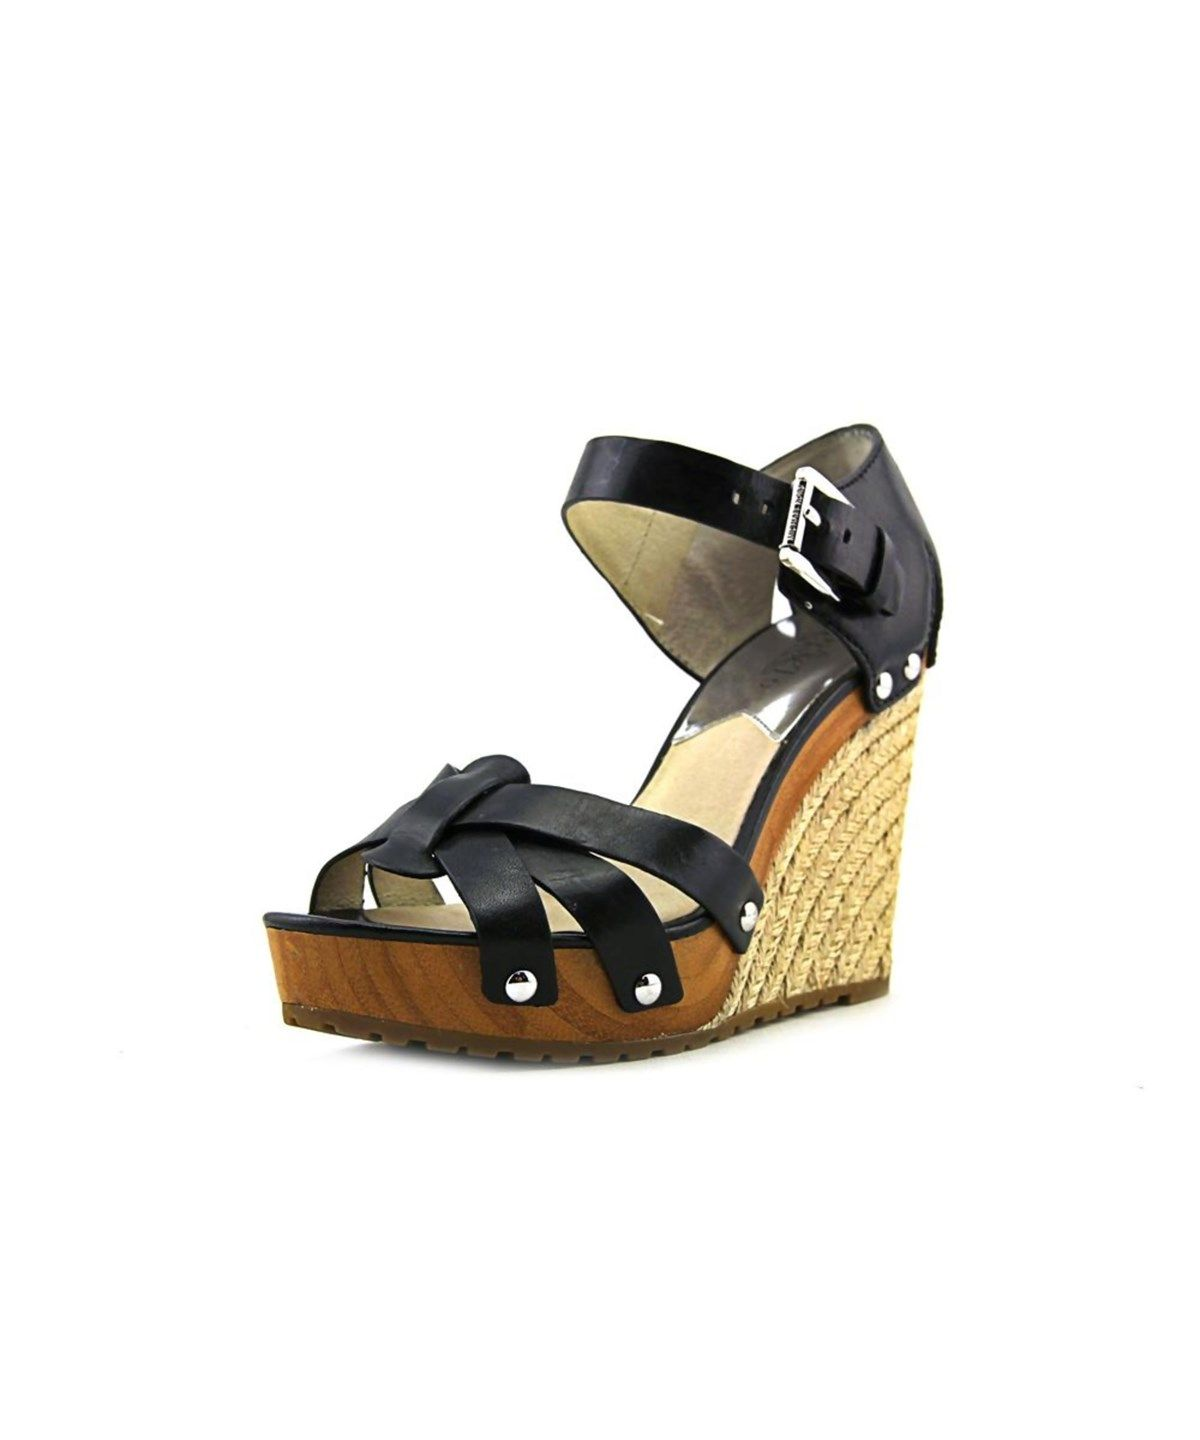 7227ee2192d MICHAEL MICHAEL KORS Michael Michael Kors Somerly Wedge Women Open Toe  Leather Wedge Sandal .  michaelmichaelkors  shoes  pumps   high heels